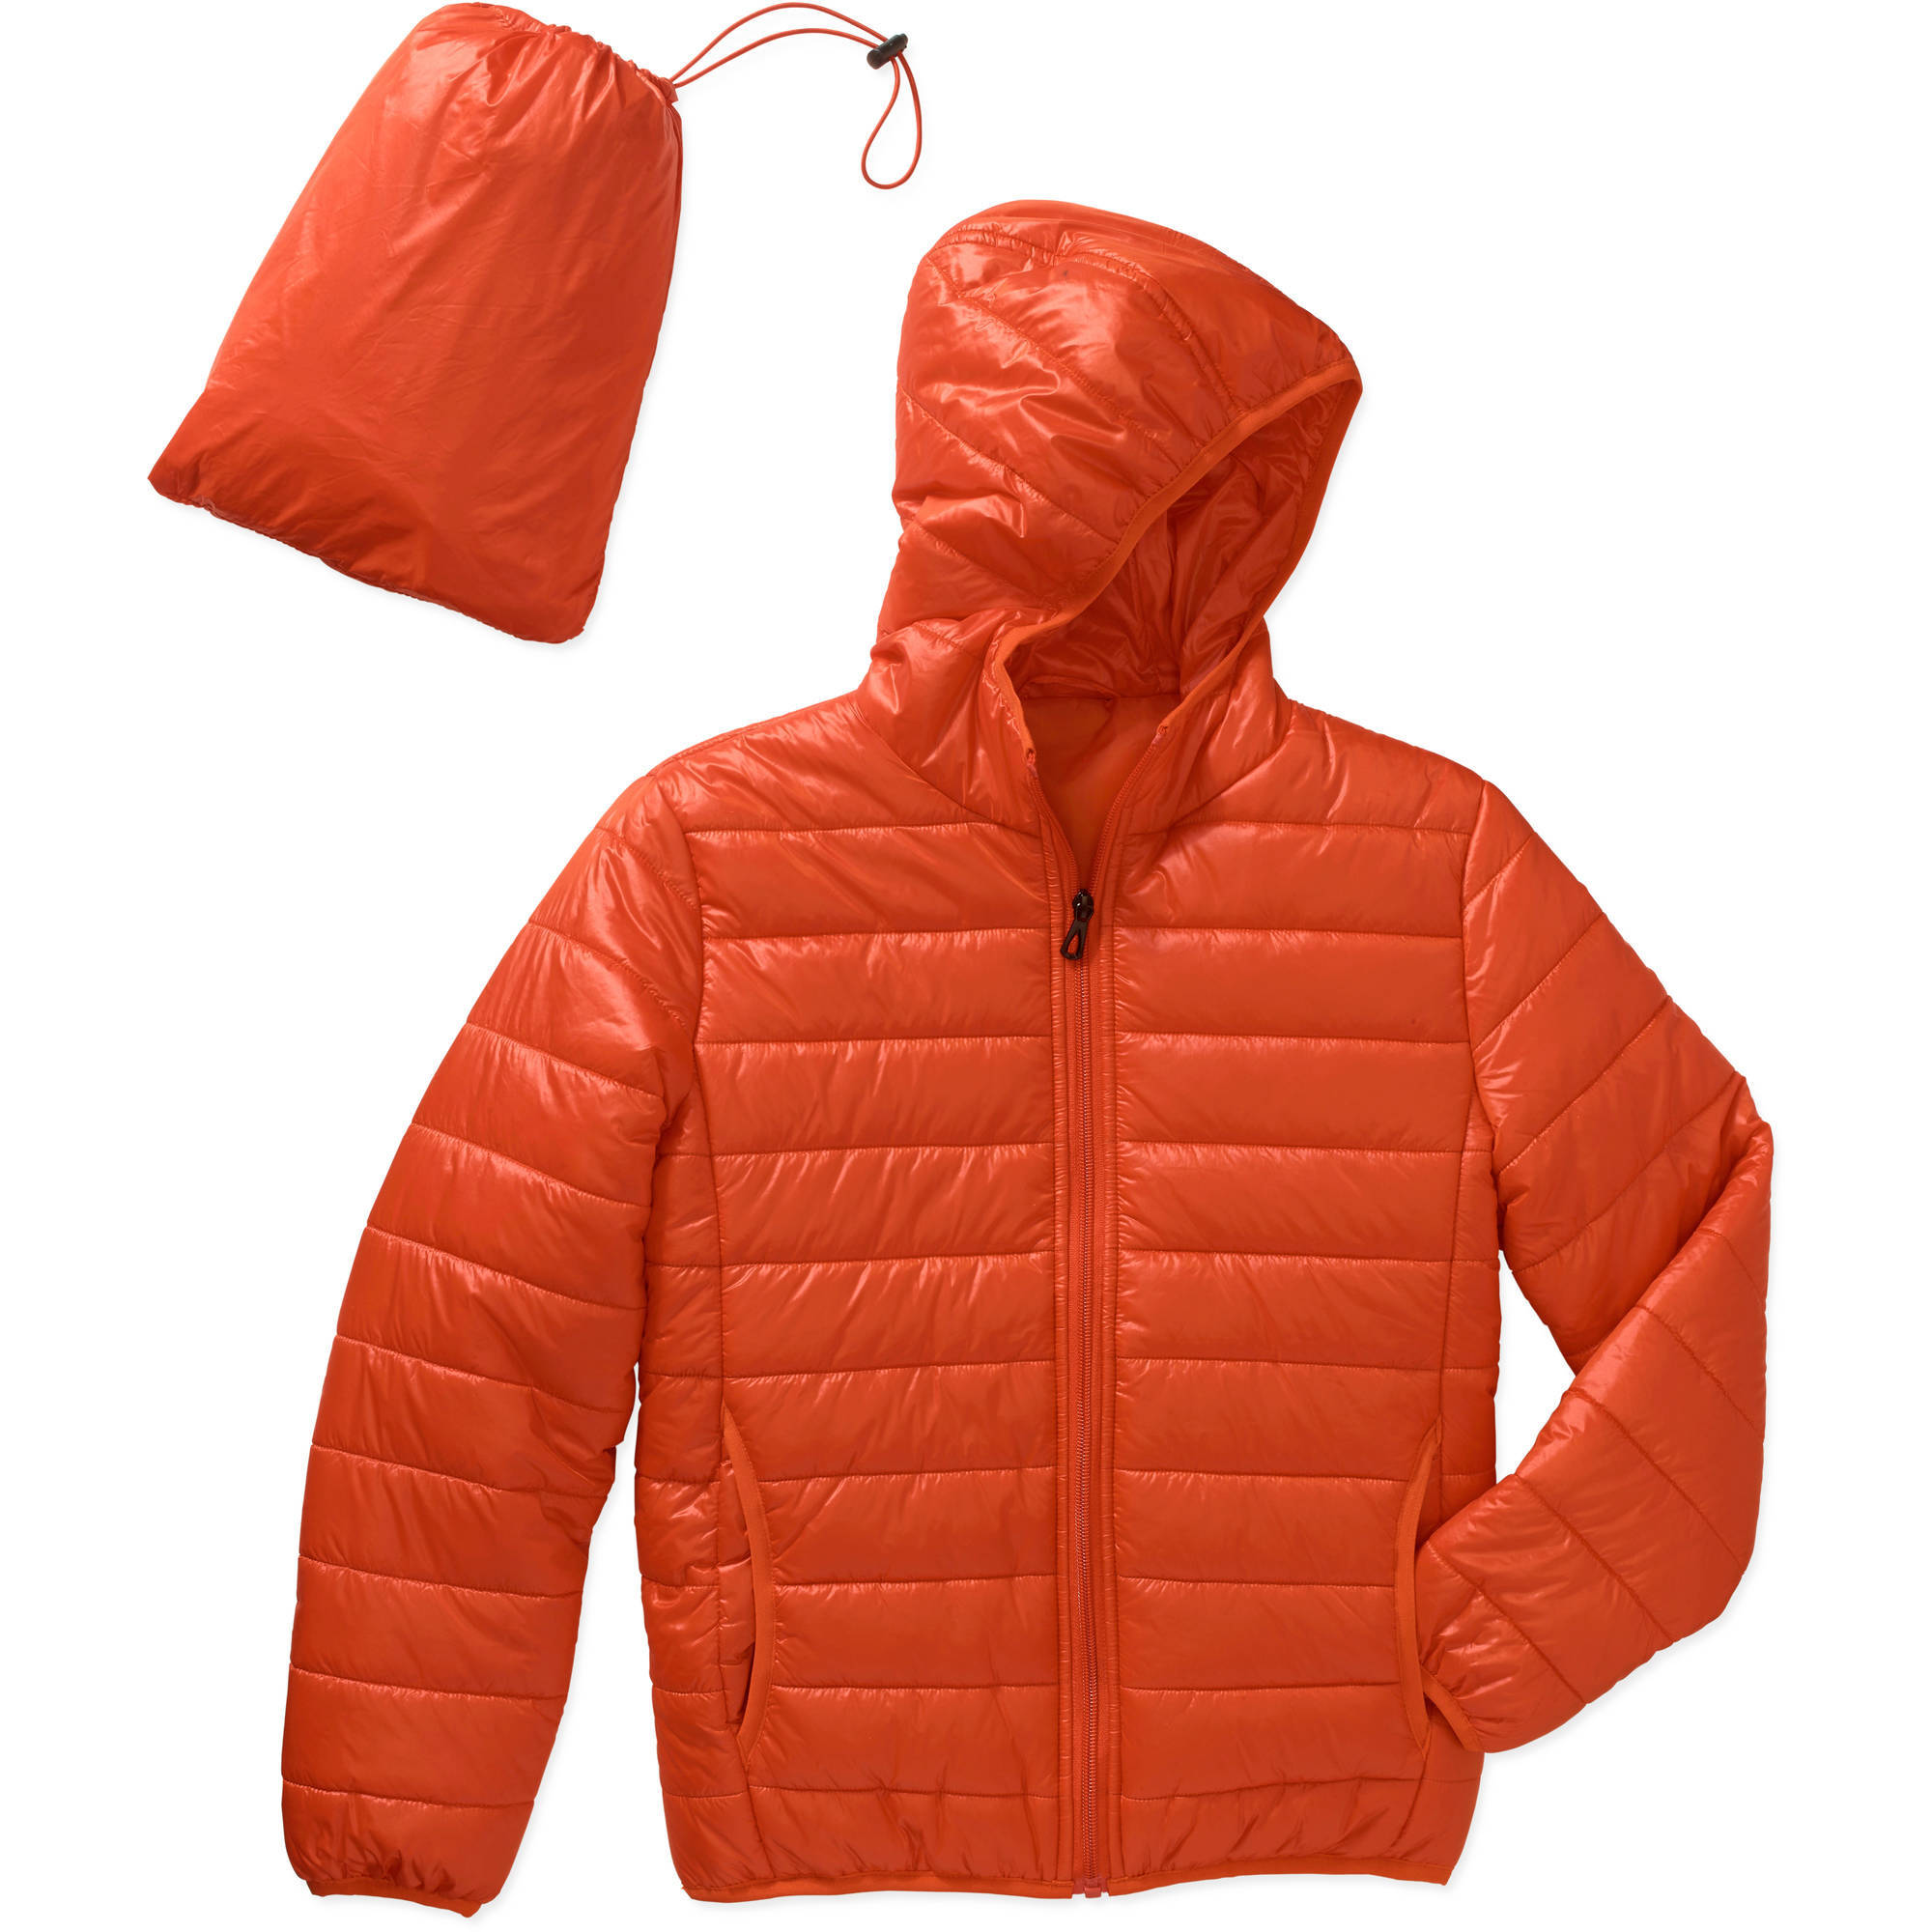 BOCINI Boys Lightweight Packable Puffer Jacket Included a Travel Pouch